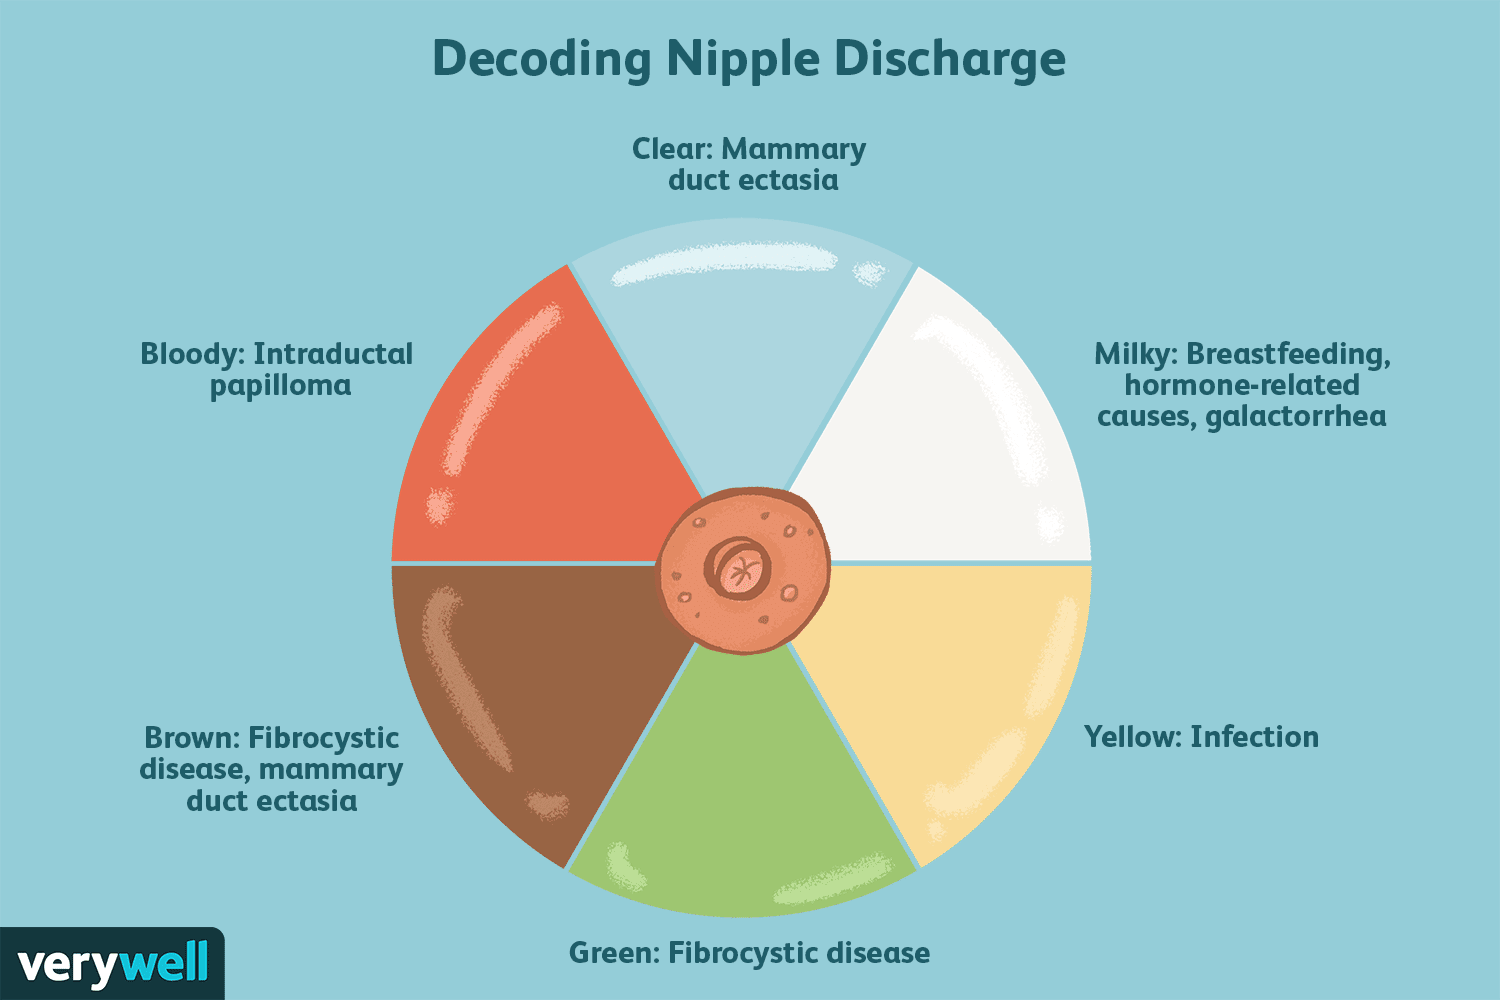 Intraductal papilloma bloody discharge